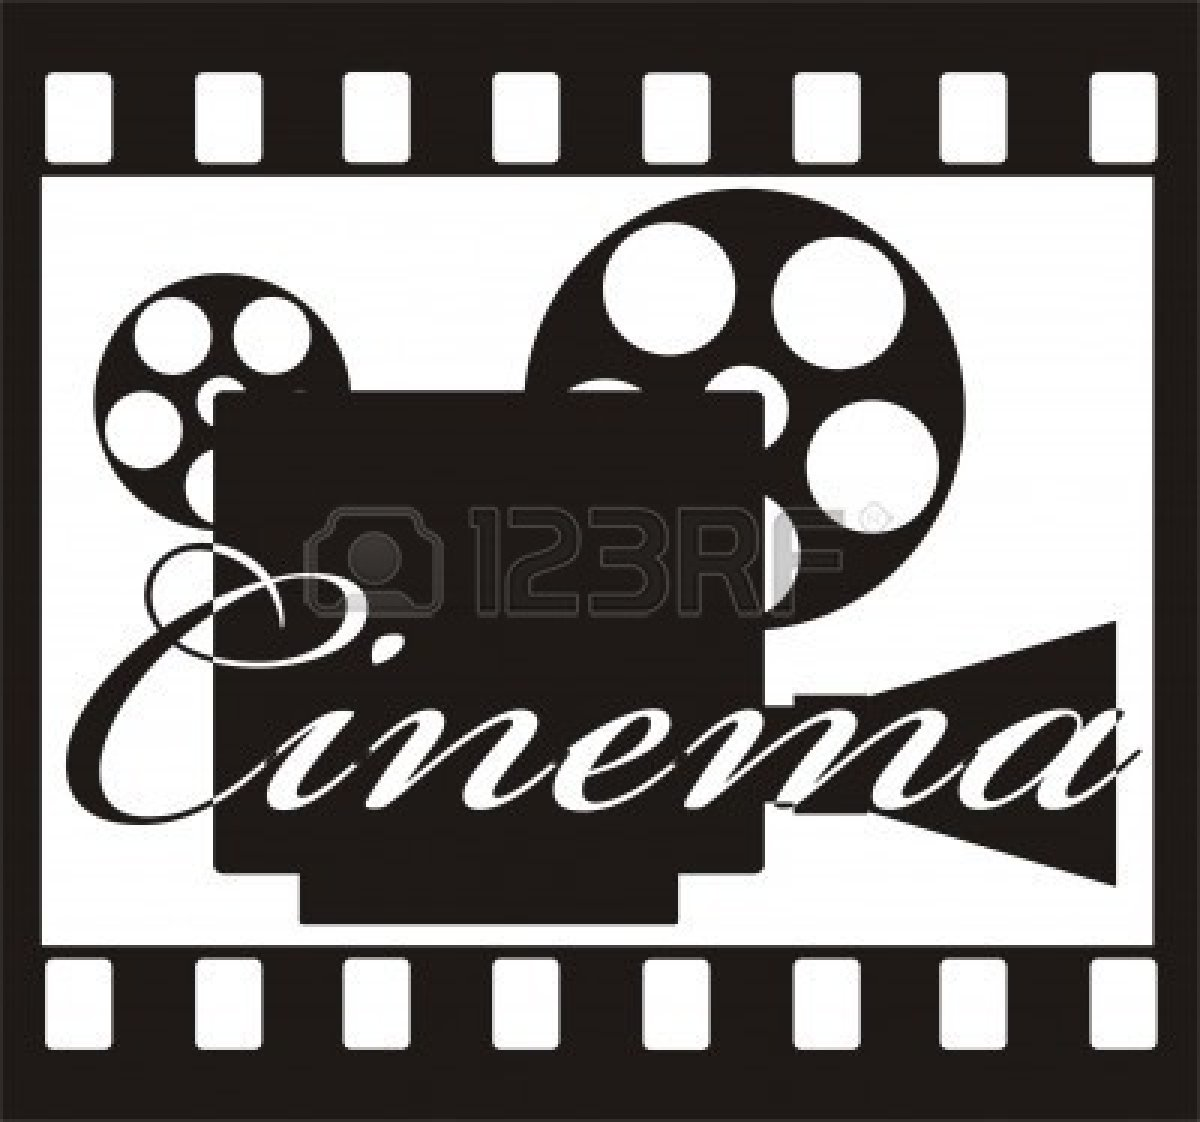 Movie Cinema Clipart Black and White.